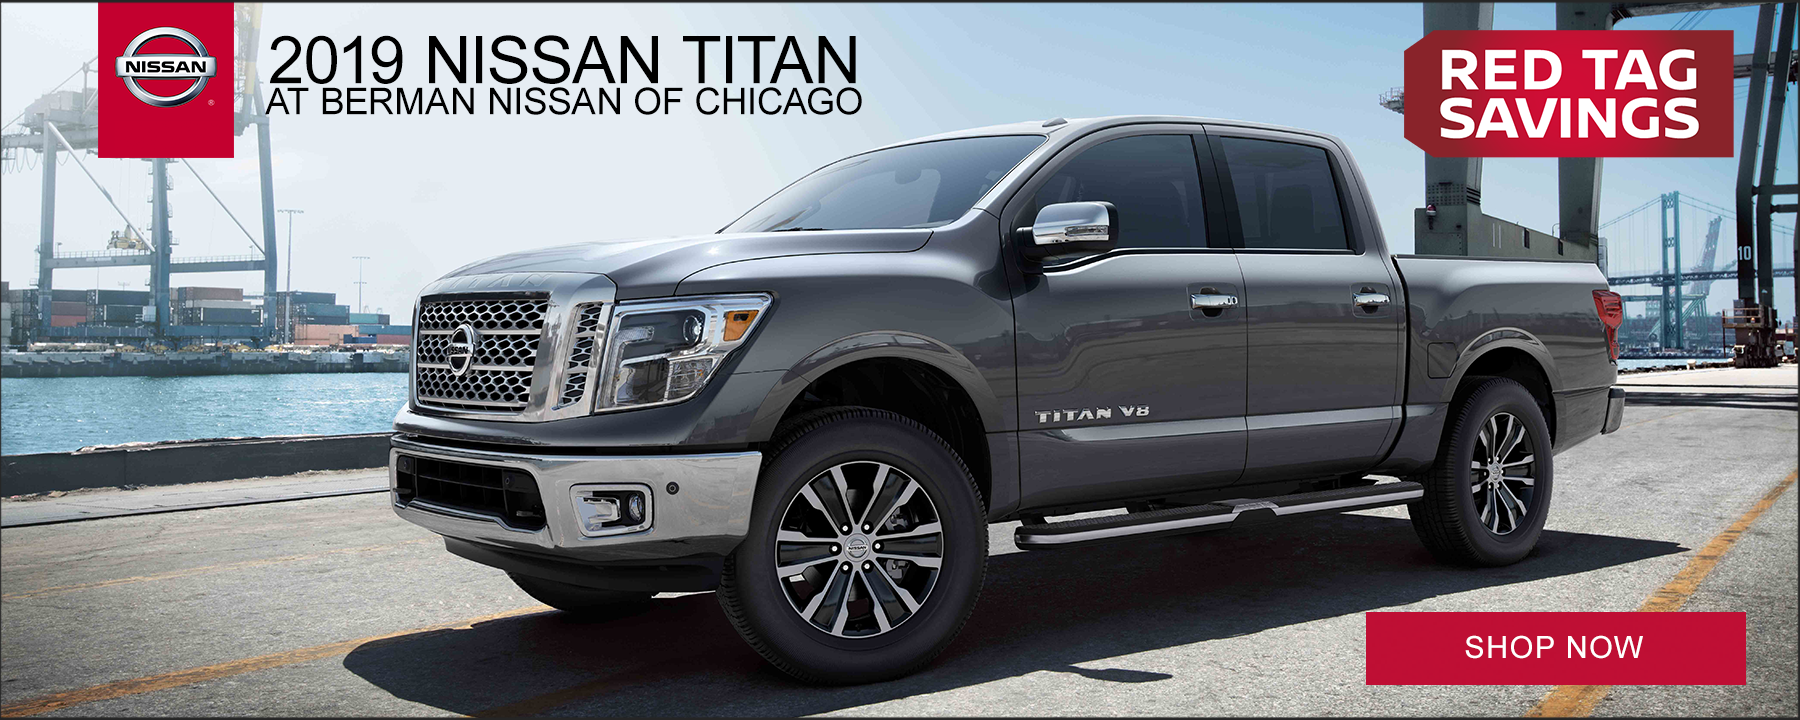 Red Tag Truck Sale on 2019 Nissan Titan at Berman Nissan of Chicago!